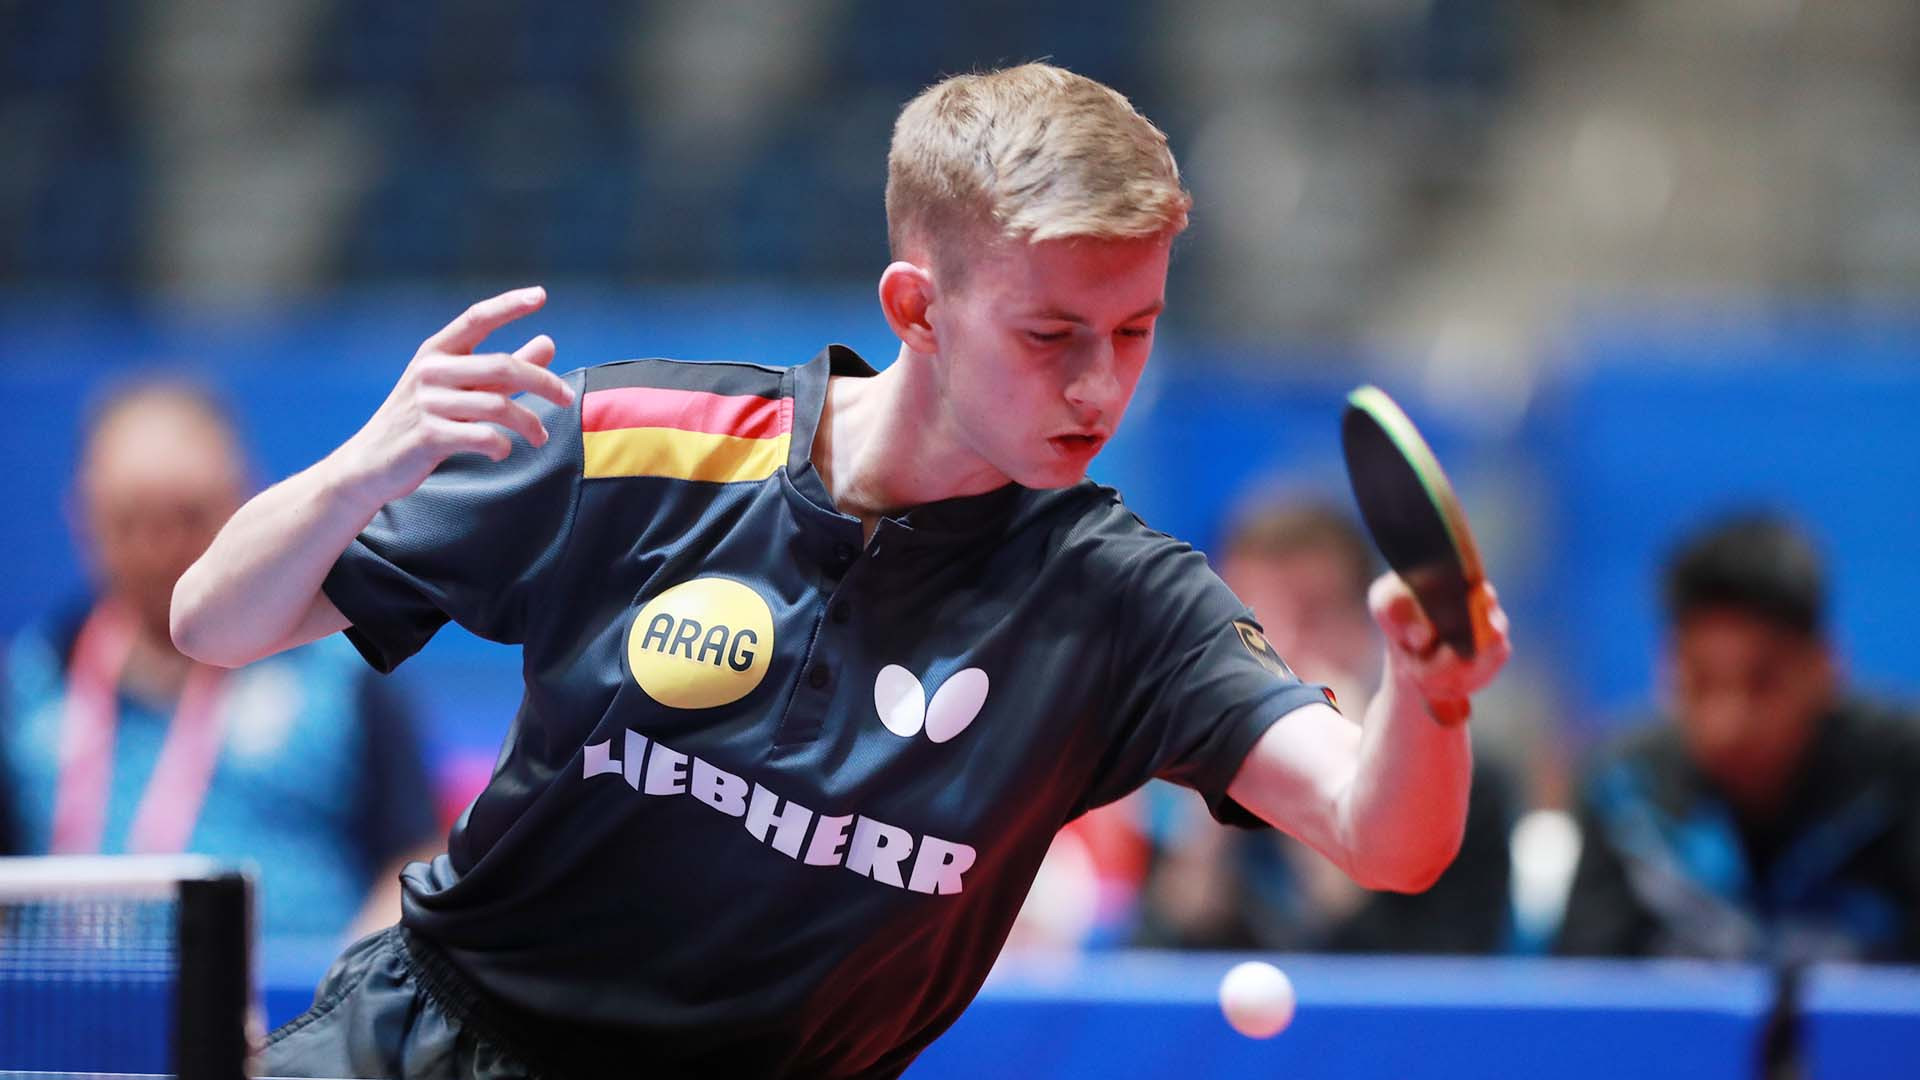 The group stages of the boys' and girls' singles got underway at the ITTF World Junior Championships in Bendigo, Australia ©ITTF